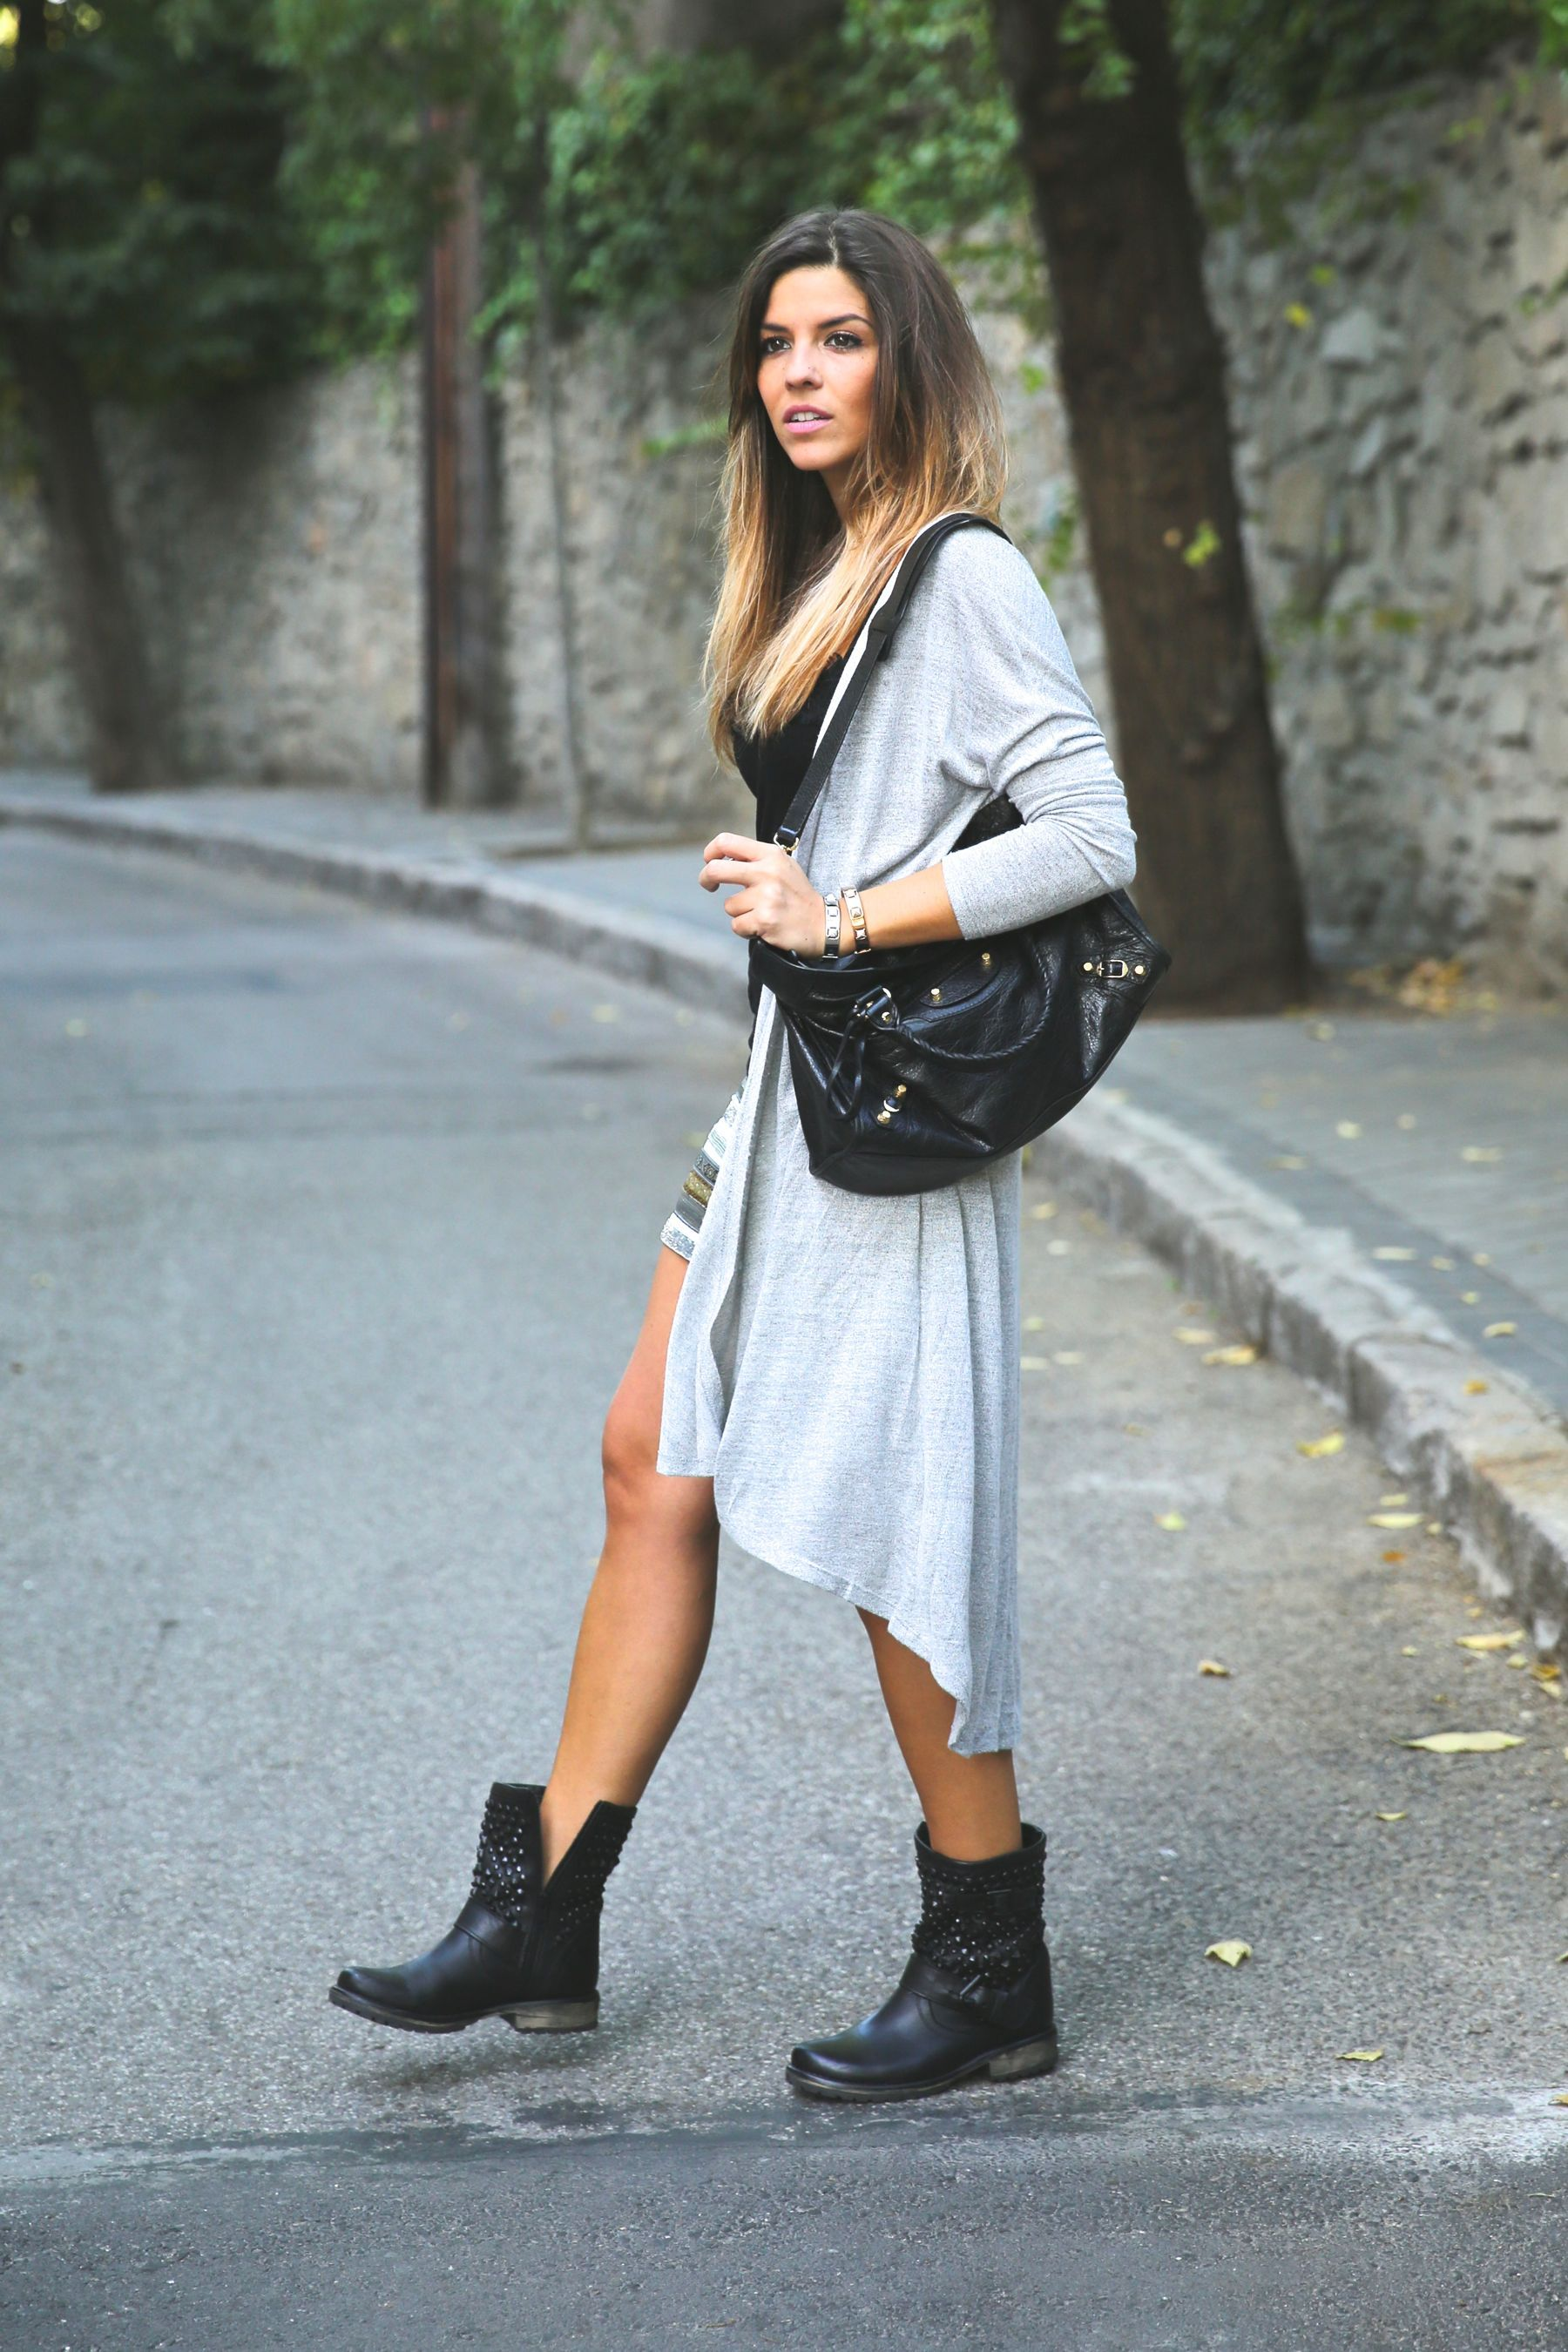 Long Cardigan Outfits... An Autumn Fashion Trend | Wearing ...